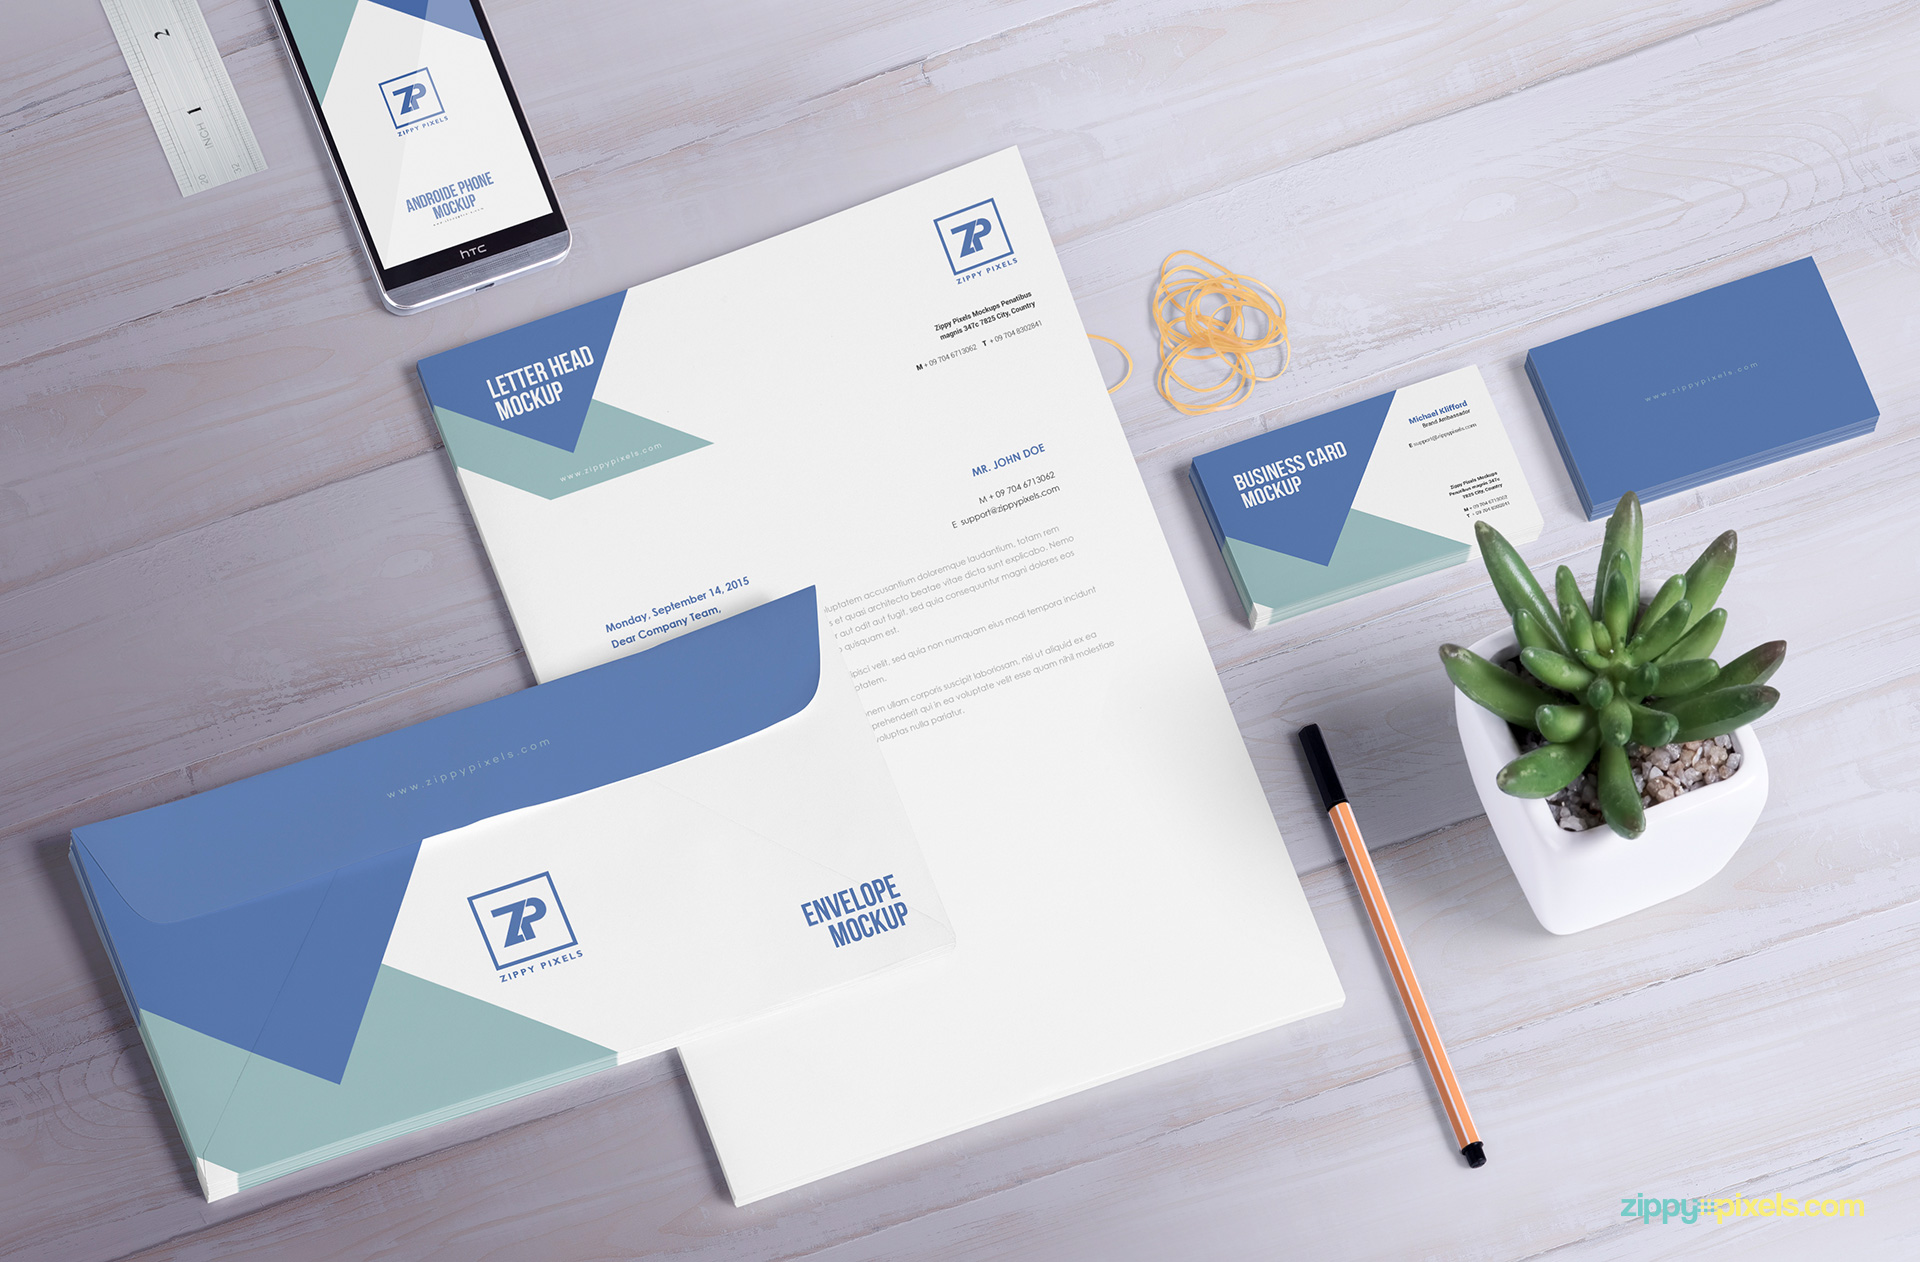 08-free-stationery-mockups-for-branding-824x542